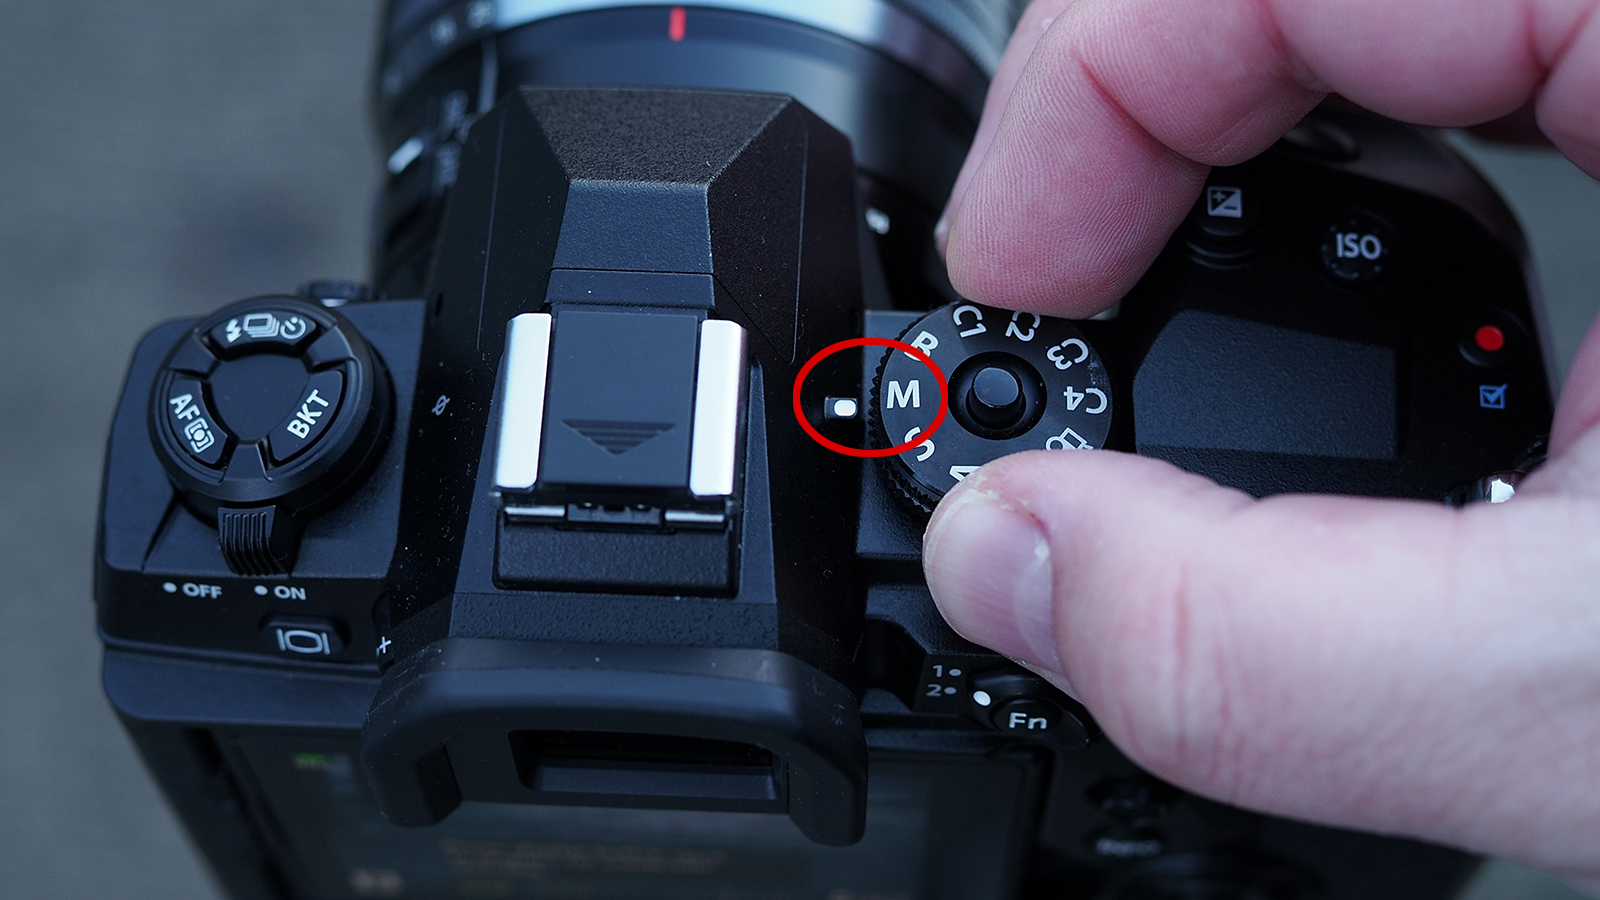 The setting 'M', activate ND filter, save as 'My profile' - my preference 'C2'